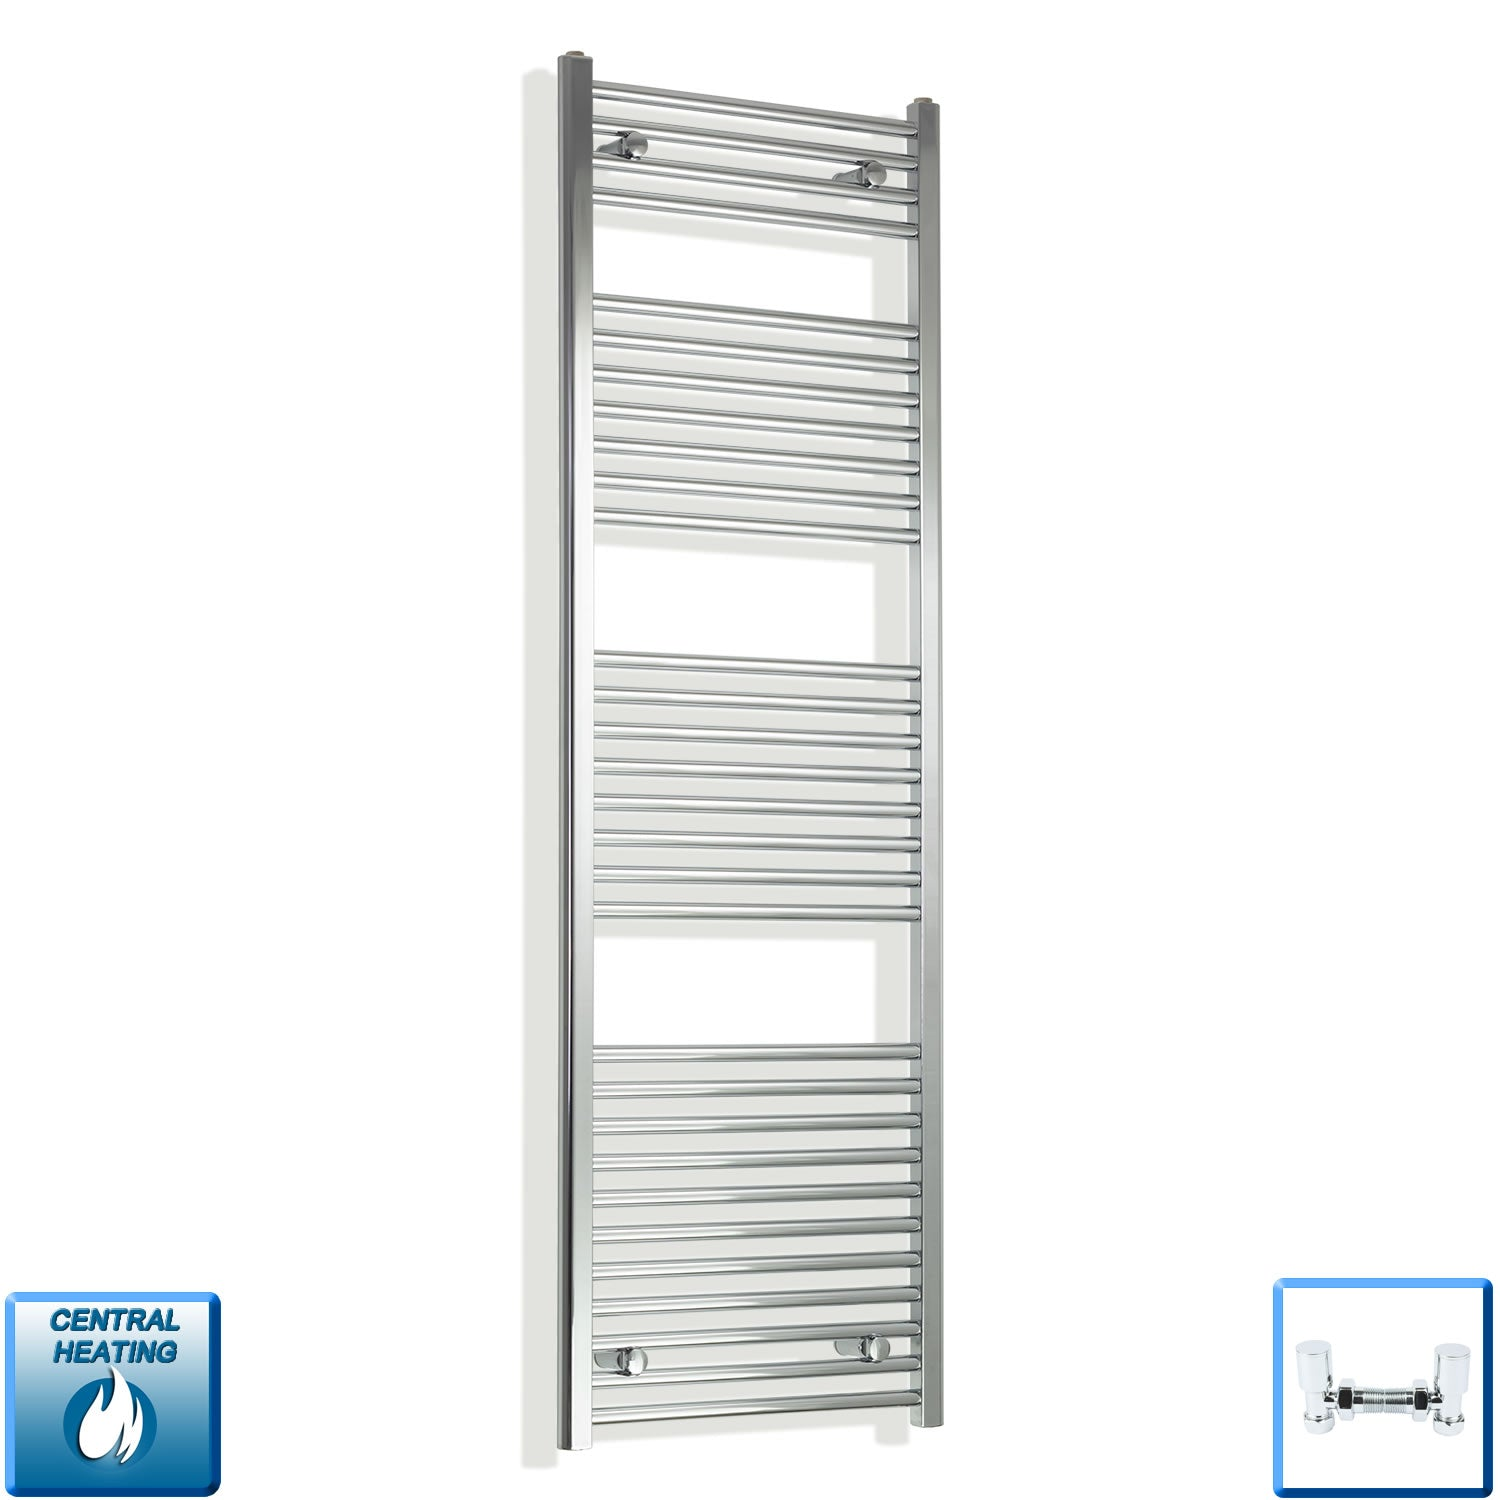 550mm Wide 1700mm High Chrome Towel Rail Radiator With Angled Valve